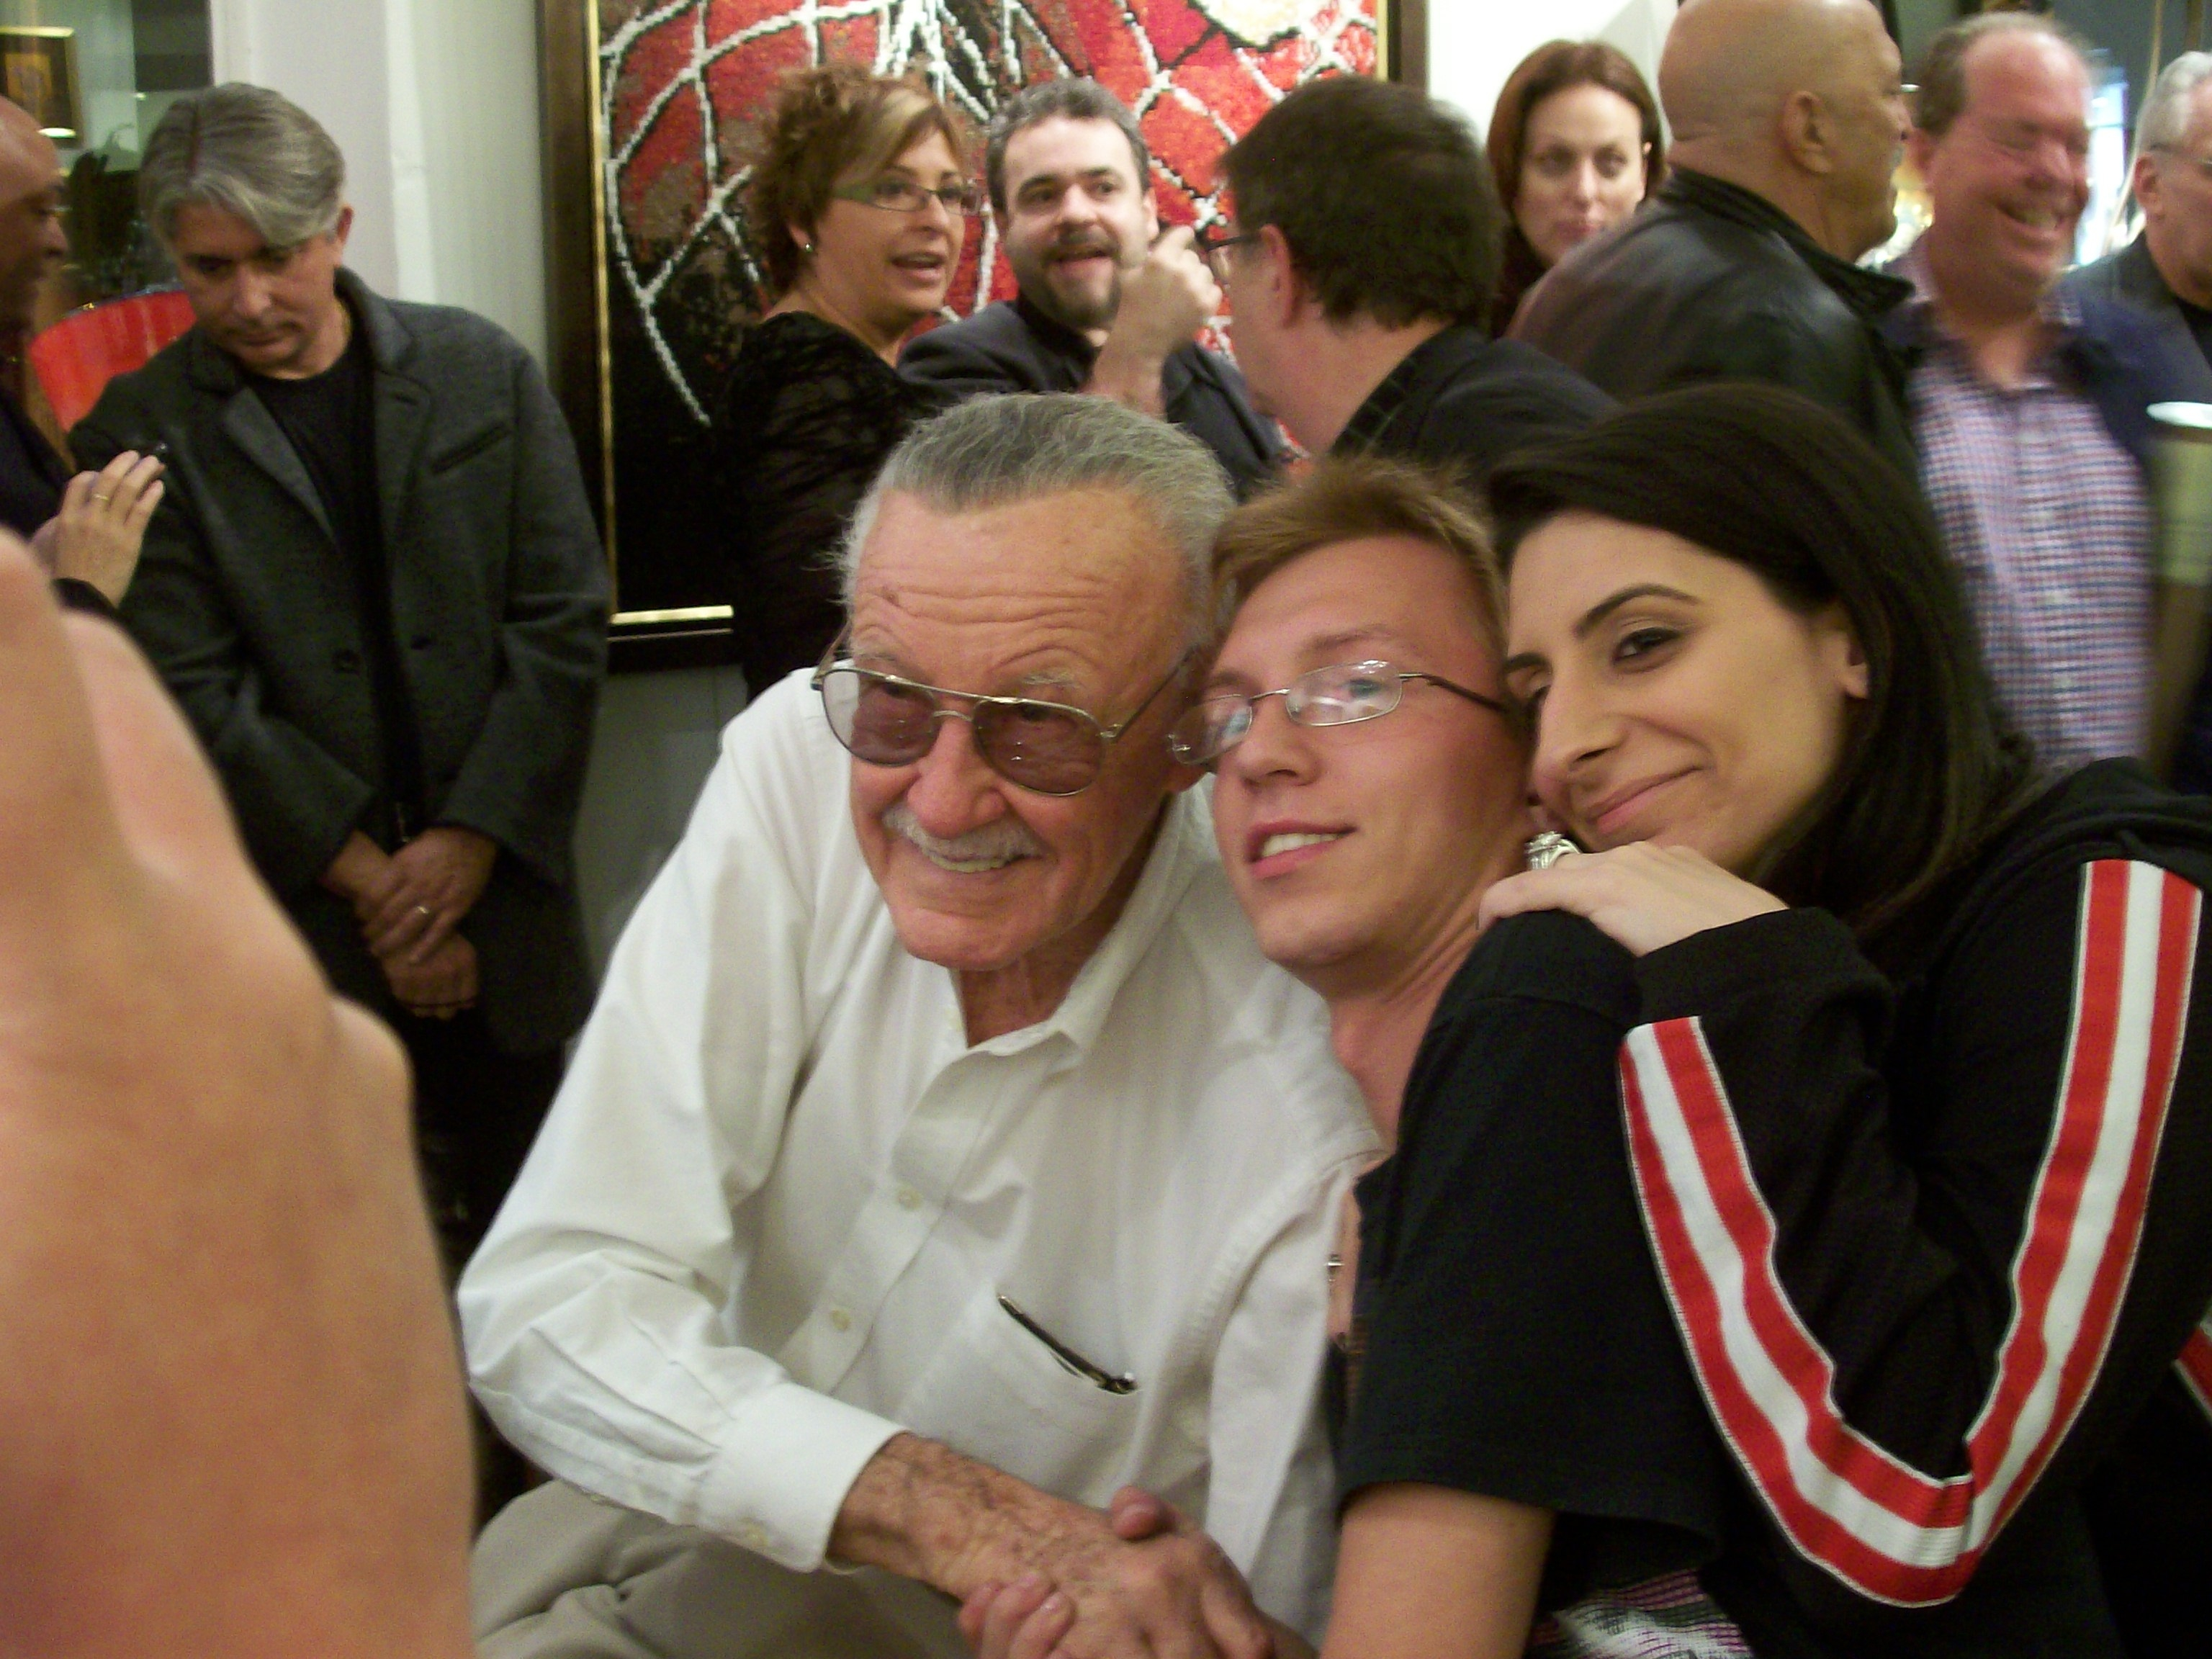 The Animazing Stan Lee Sundancetv